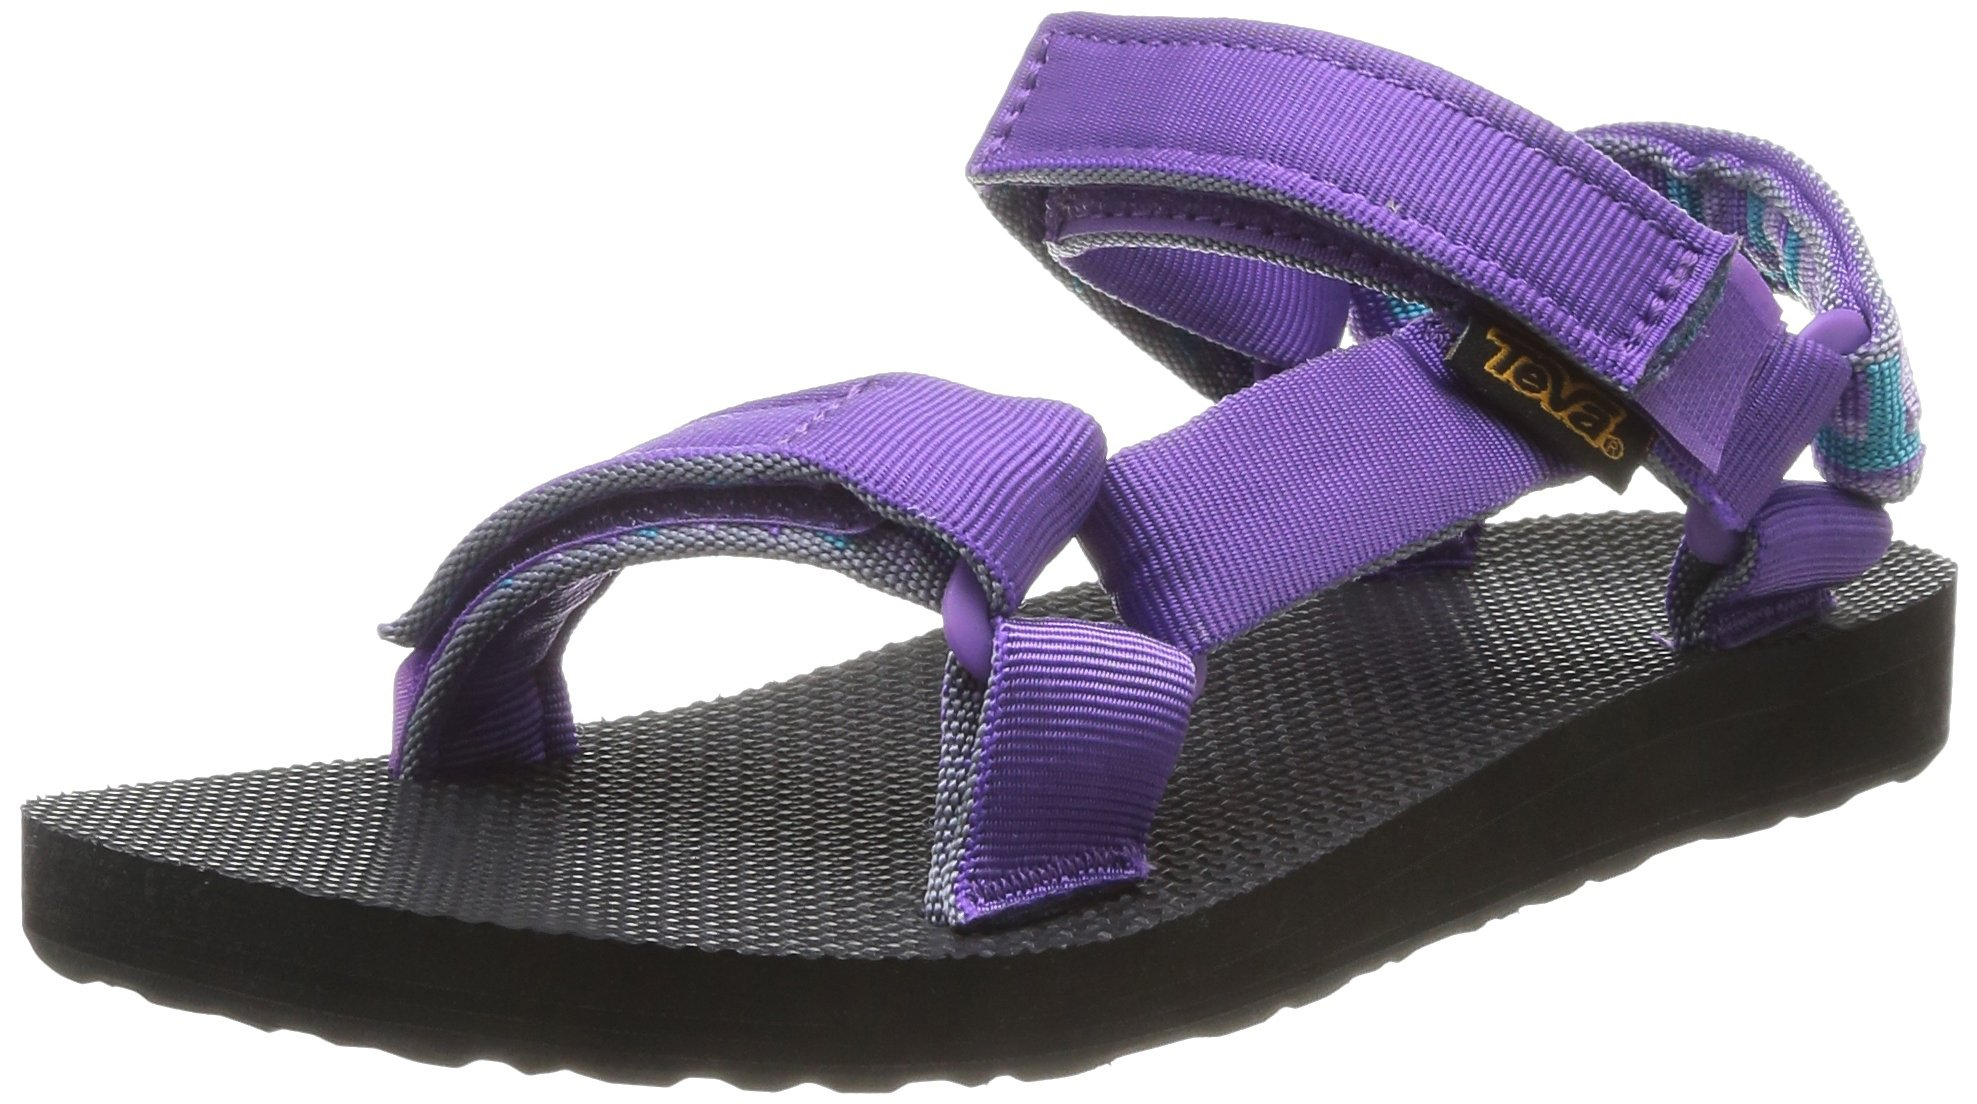 Teva Women's Original Universal Sandal, Azura Purple, 6 M US